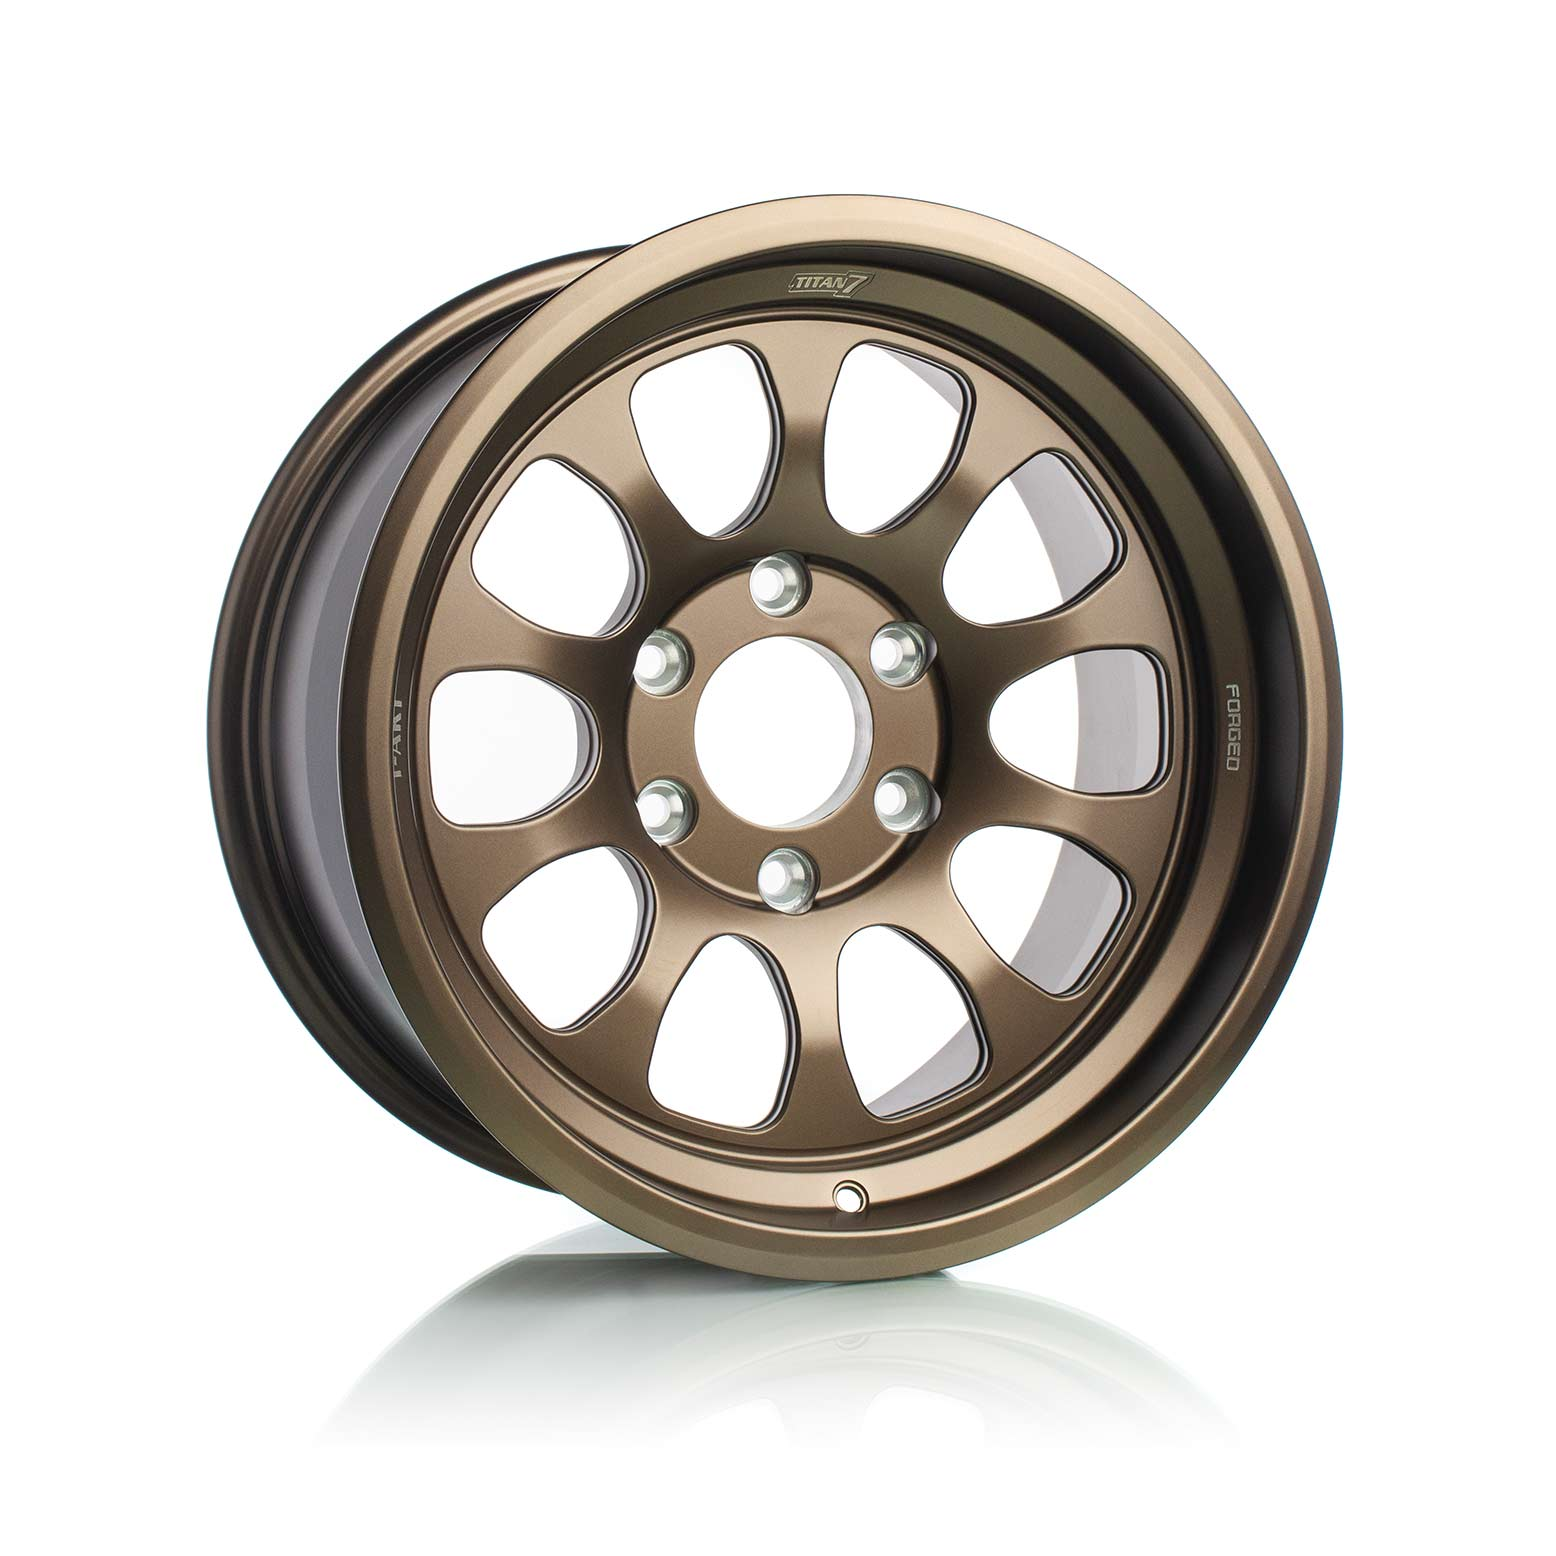 Titan7 T-AK1 Forged Off-Road Wheel Techna Bronze, F-150 2017-2020, Raptor 2017-2020